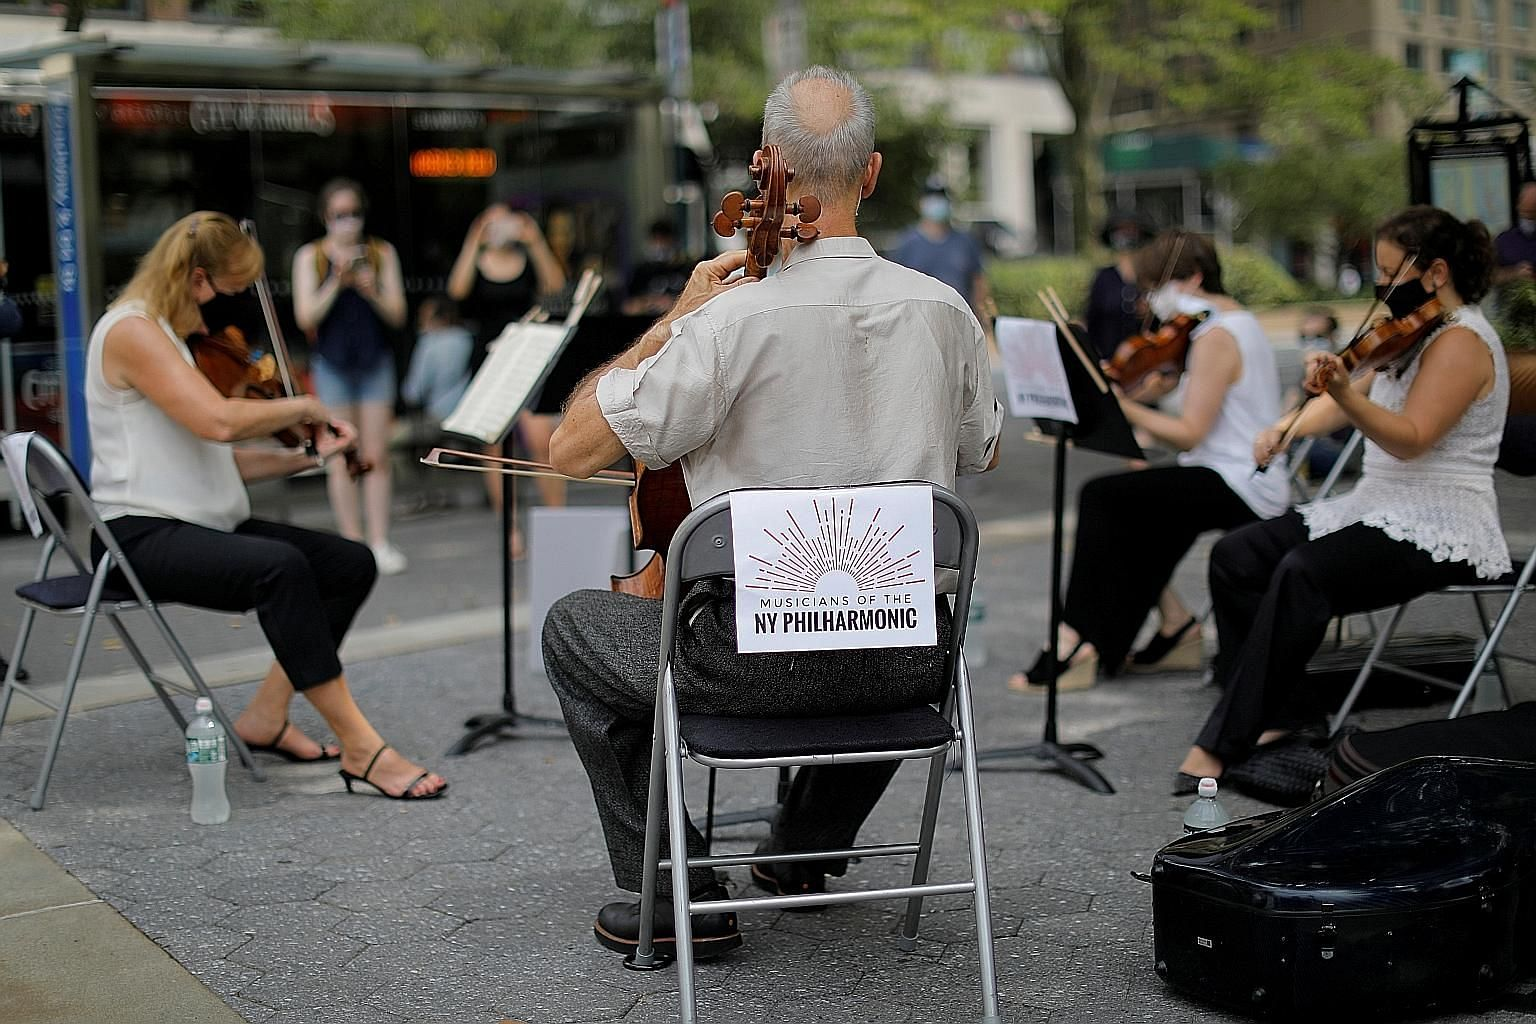 New York Philharmonic Orchestra musicians performing as a string quartet at a park in Manhattan on July 7, the first performance in public since March.